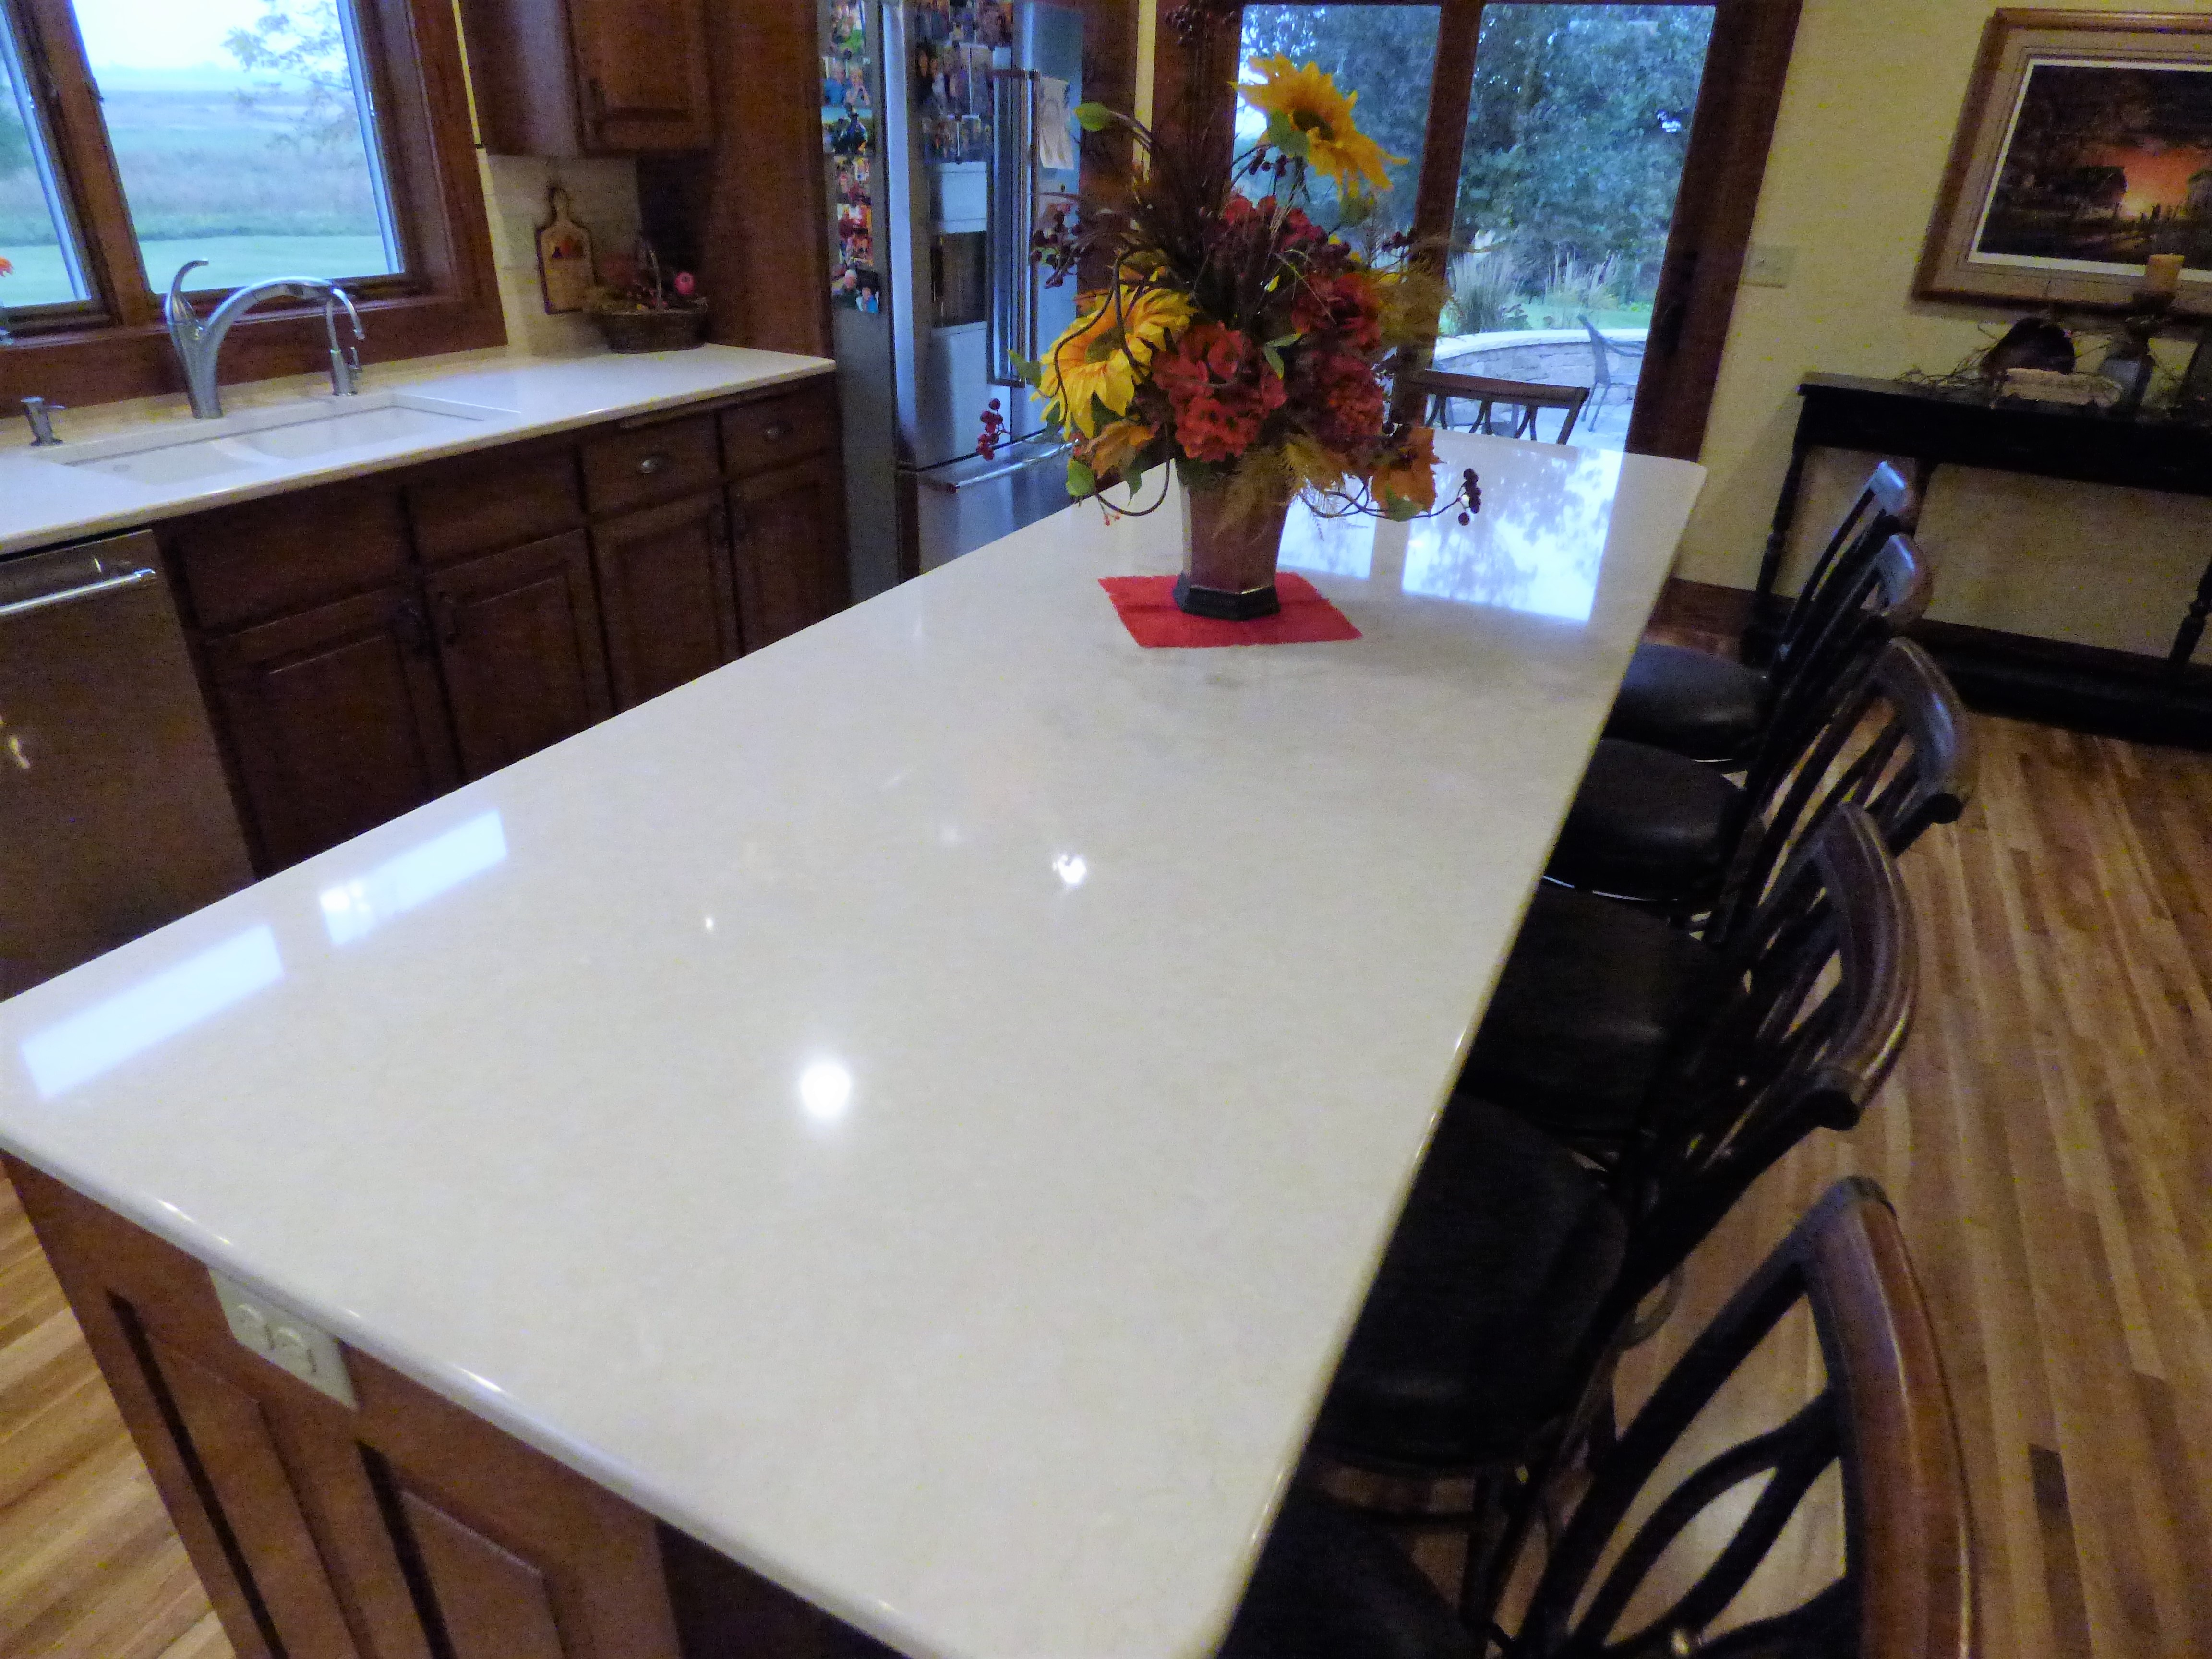 Cambria Fairbourne Quartz Countertops Stone Center